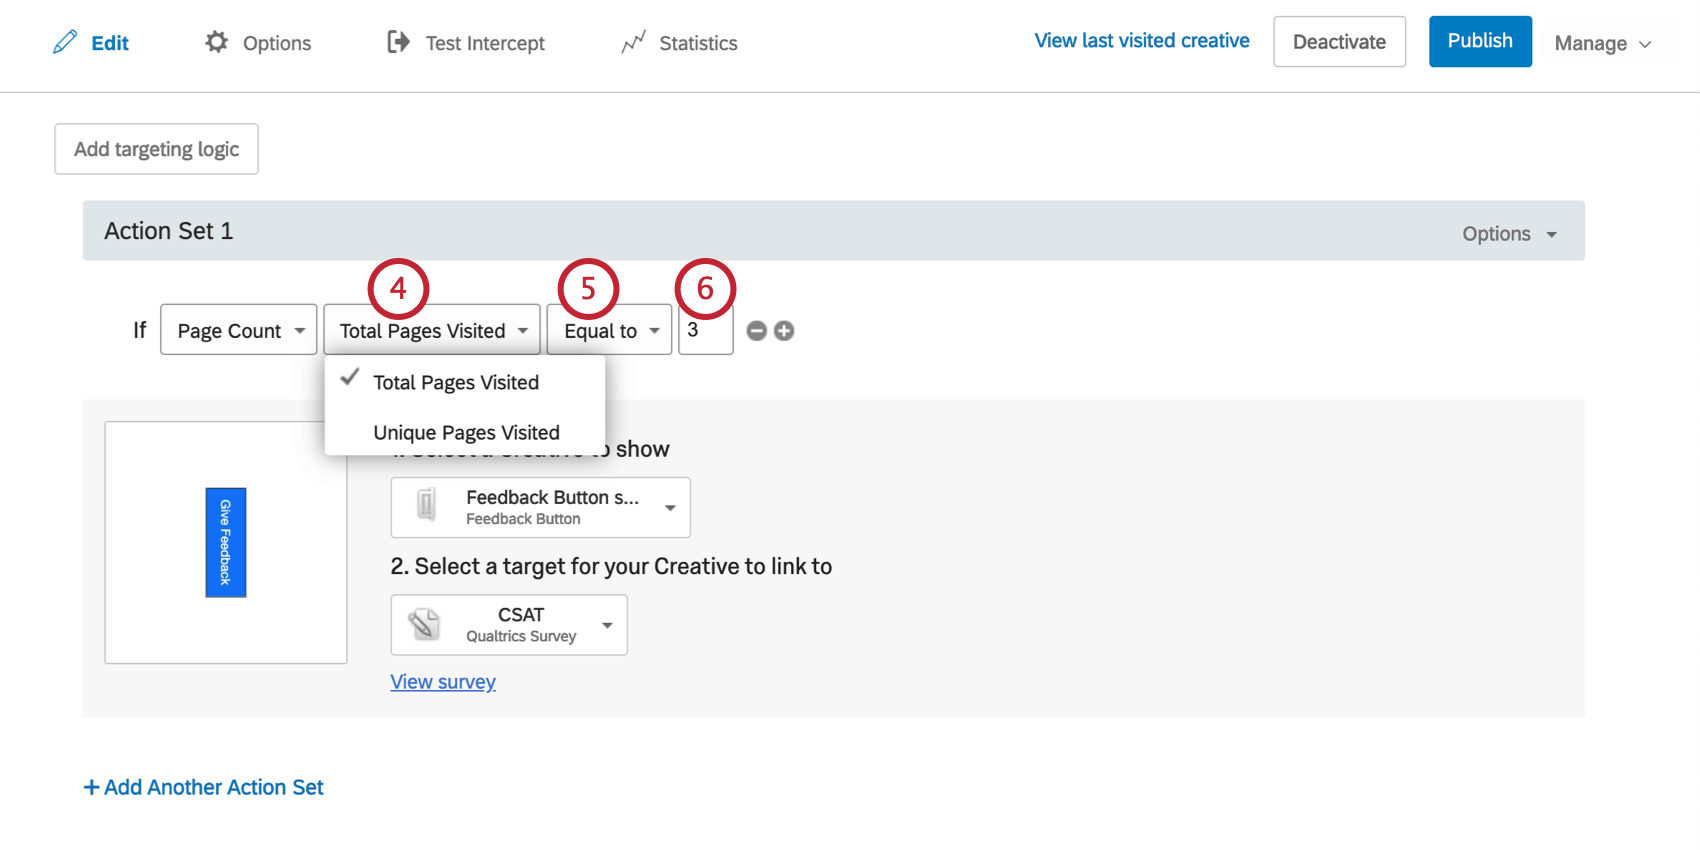 Condition says to show the Creative if Page count Total Pages Visited is Equal to 3